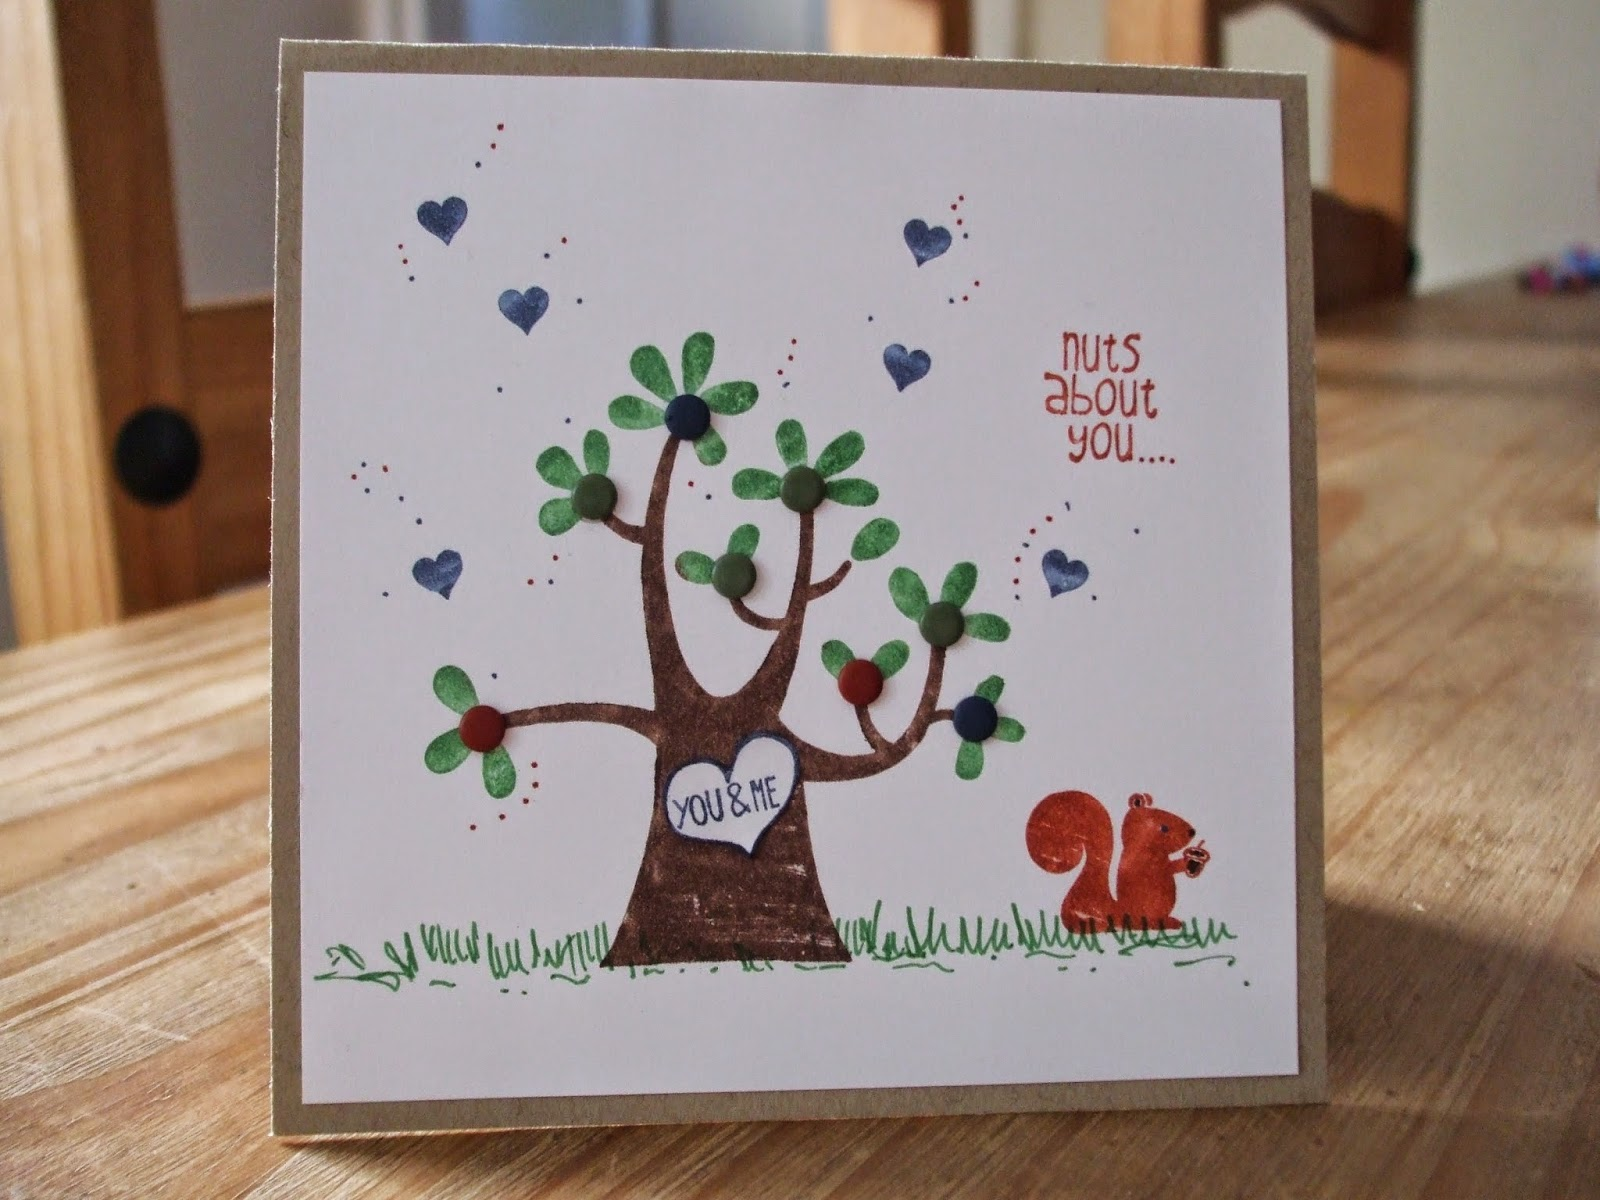 Nuts about You, Stampin' Up!